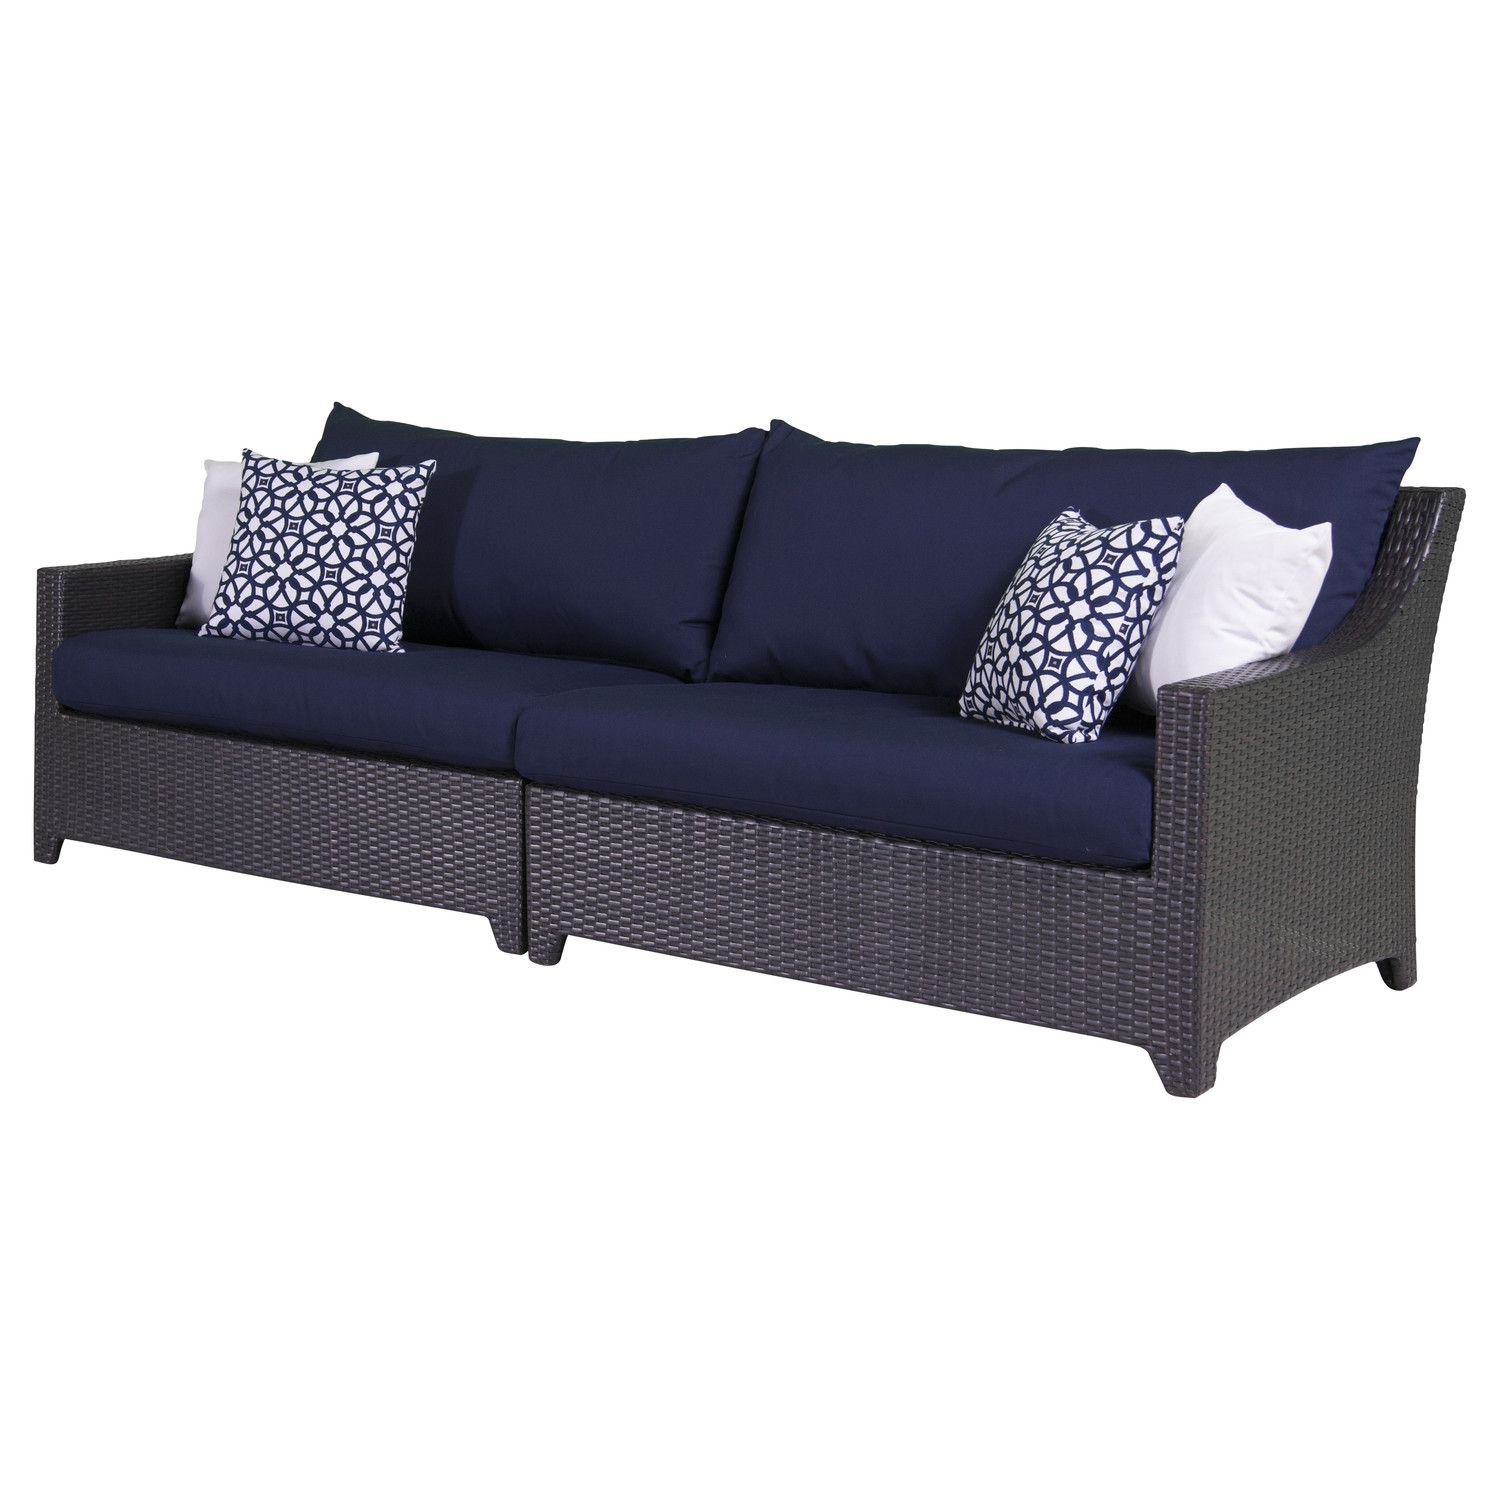 rst brands deco sofa with cushion outdoorsy does it rh pinterest it